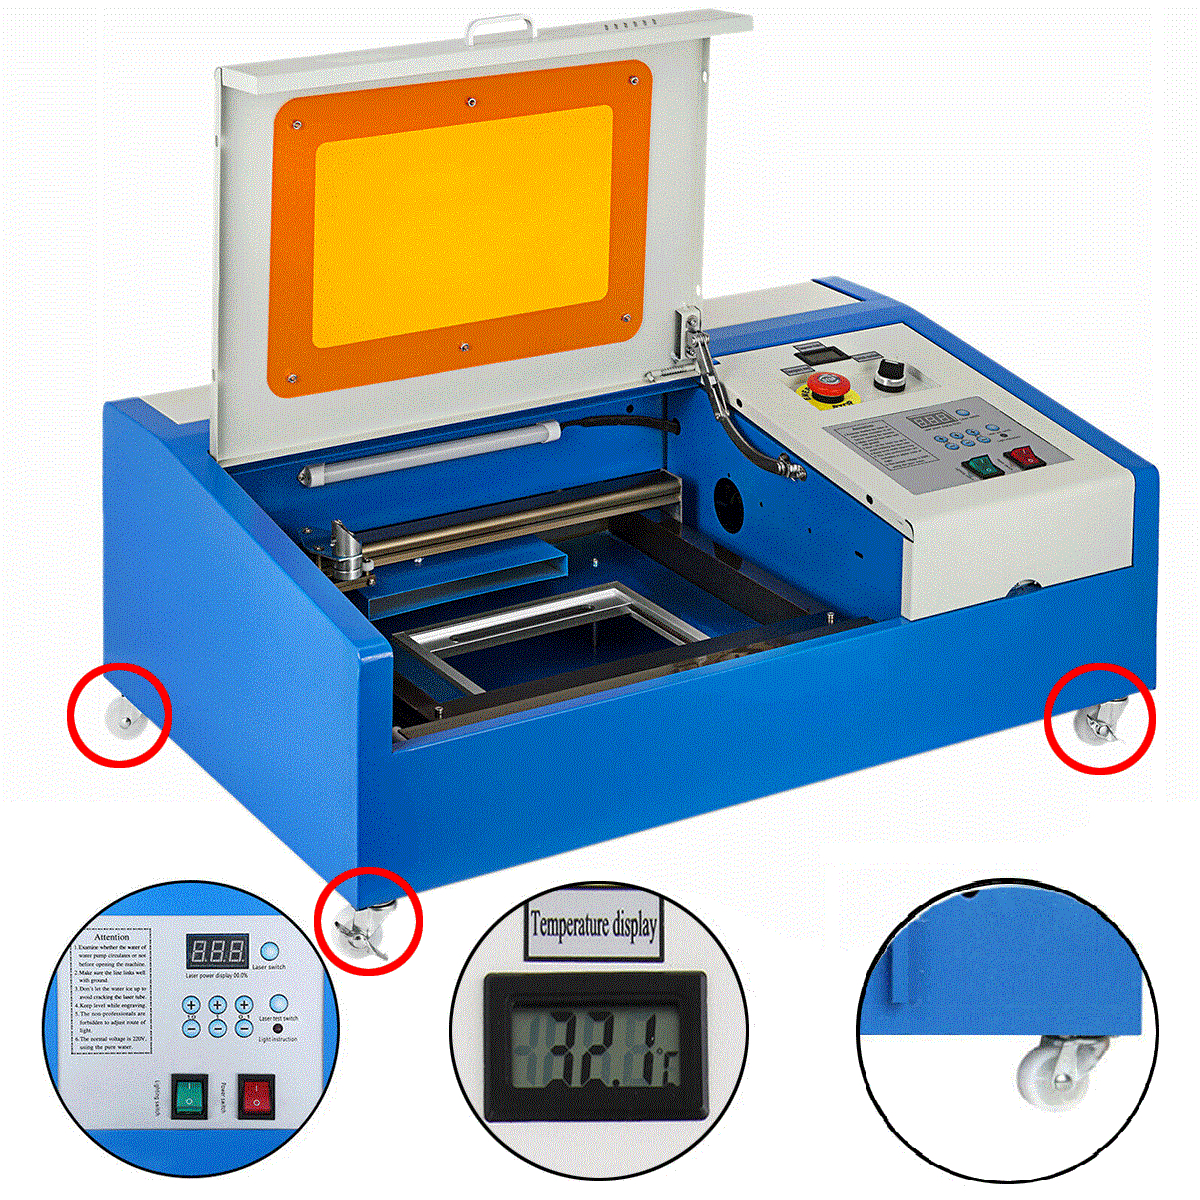 CO2-Usb-Laser-Engraving-Cutting-Machine-Engraver-Cutter-Air-Assist-Carving thumbnail 94